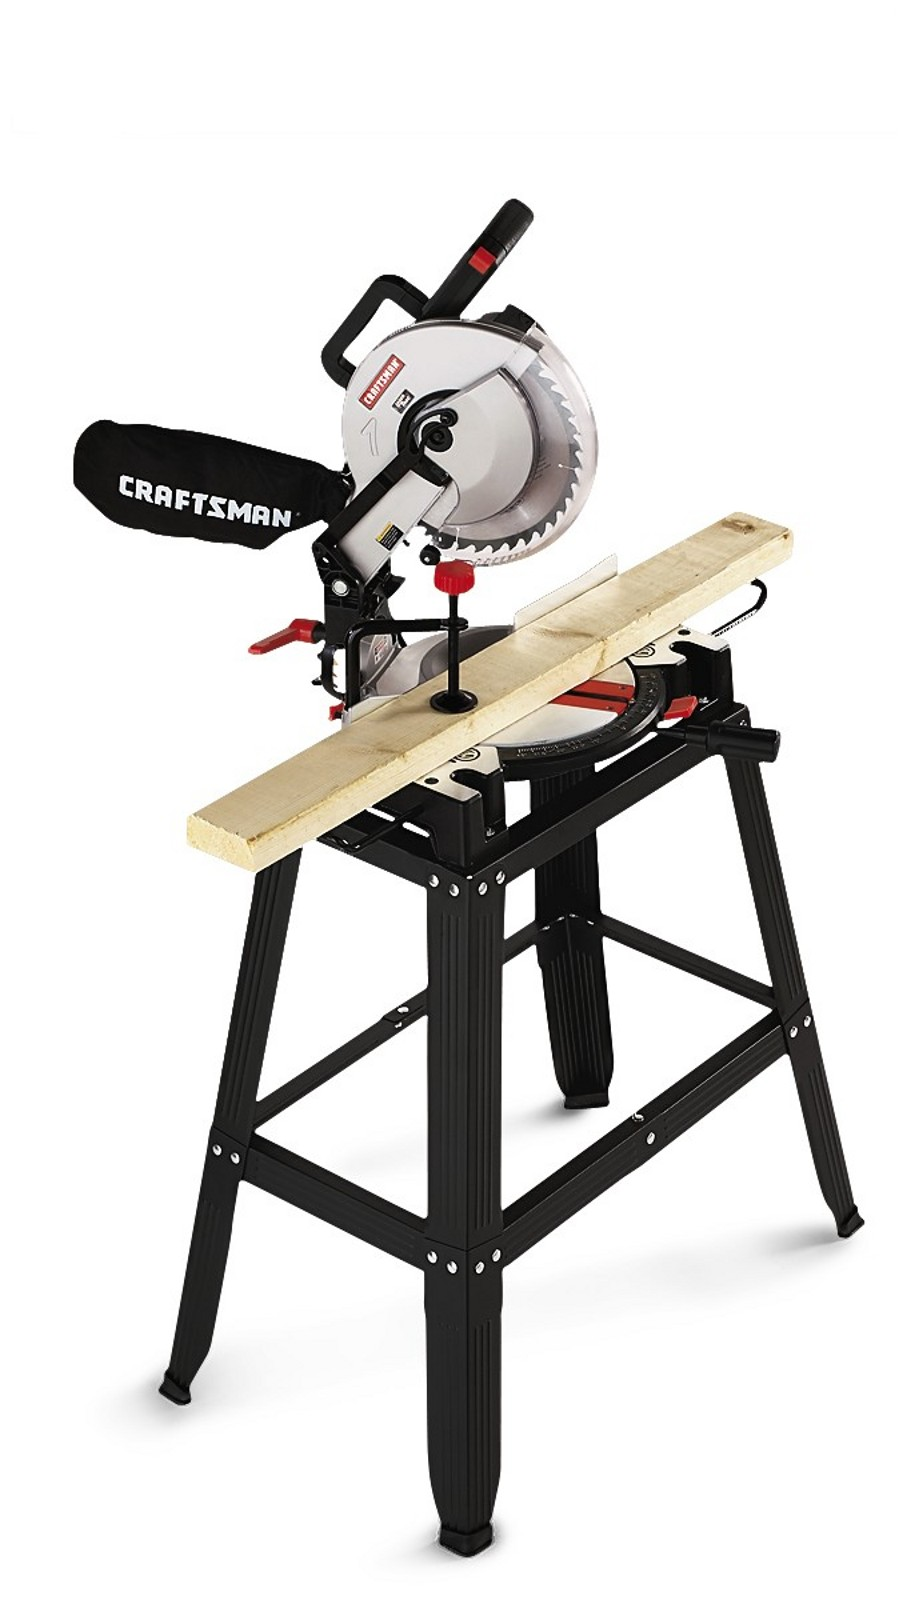 "Craftsman 10"" Compound Miter Saw with Stand"